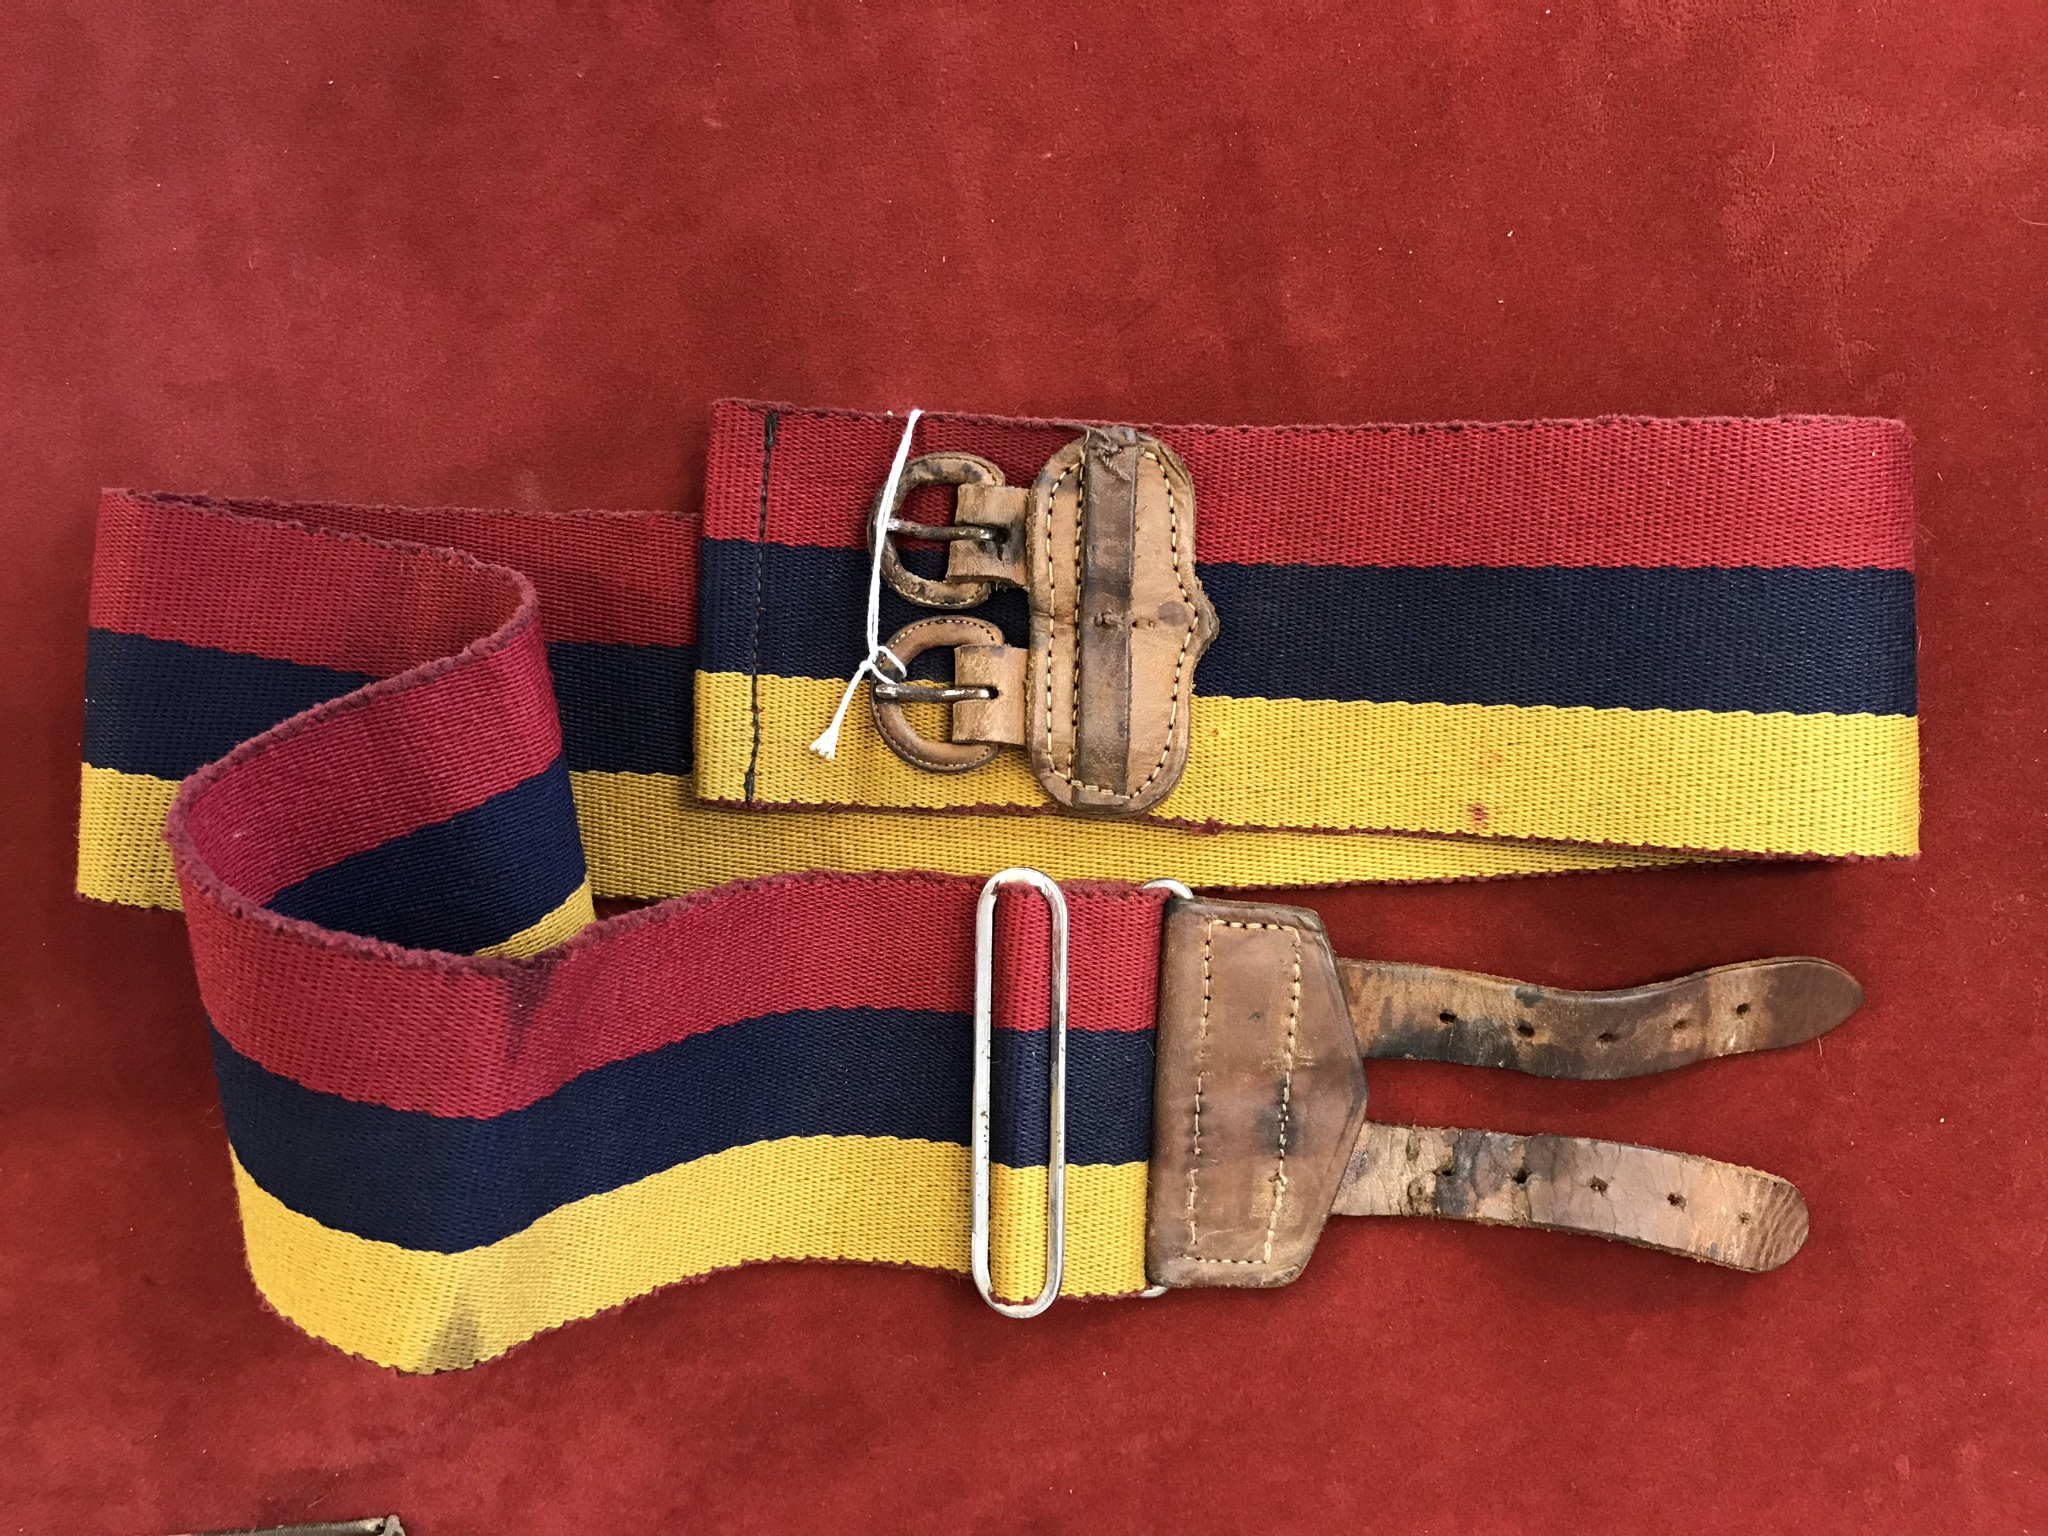 Royal Army Medical Corps Stable belt with leather strap fitting. - Image 2 of 2